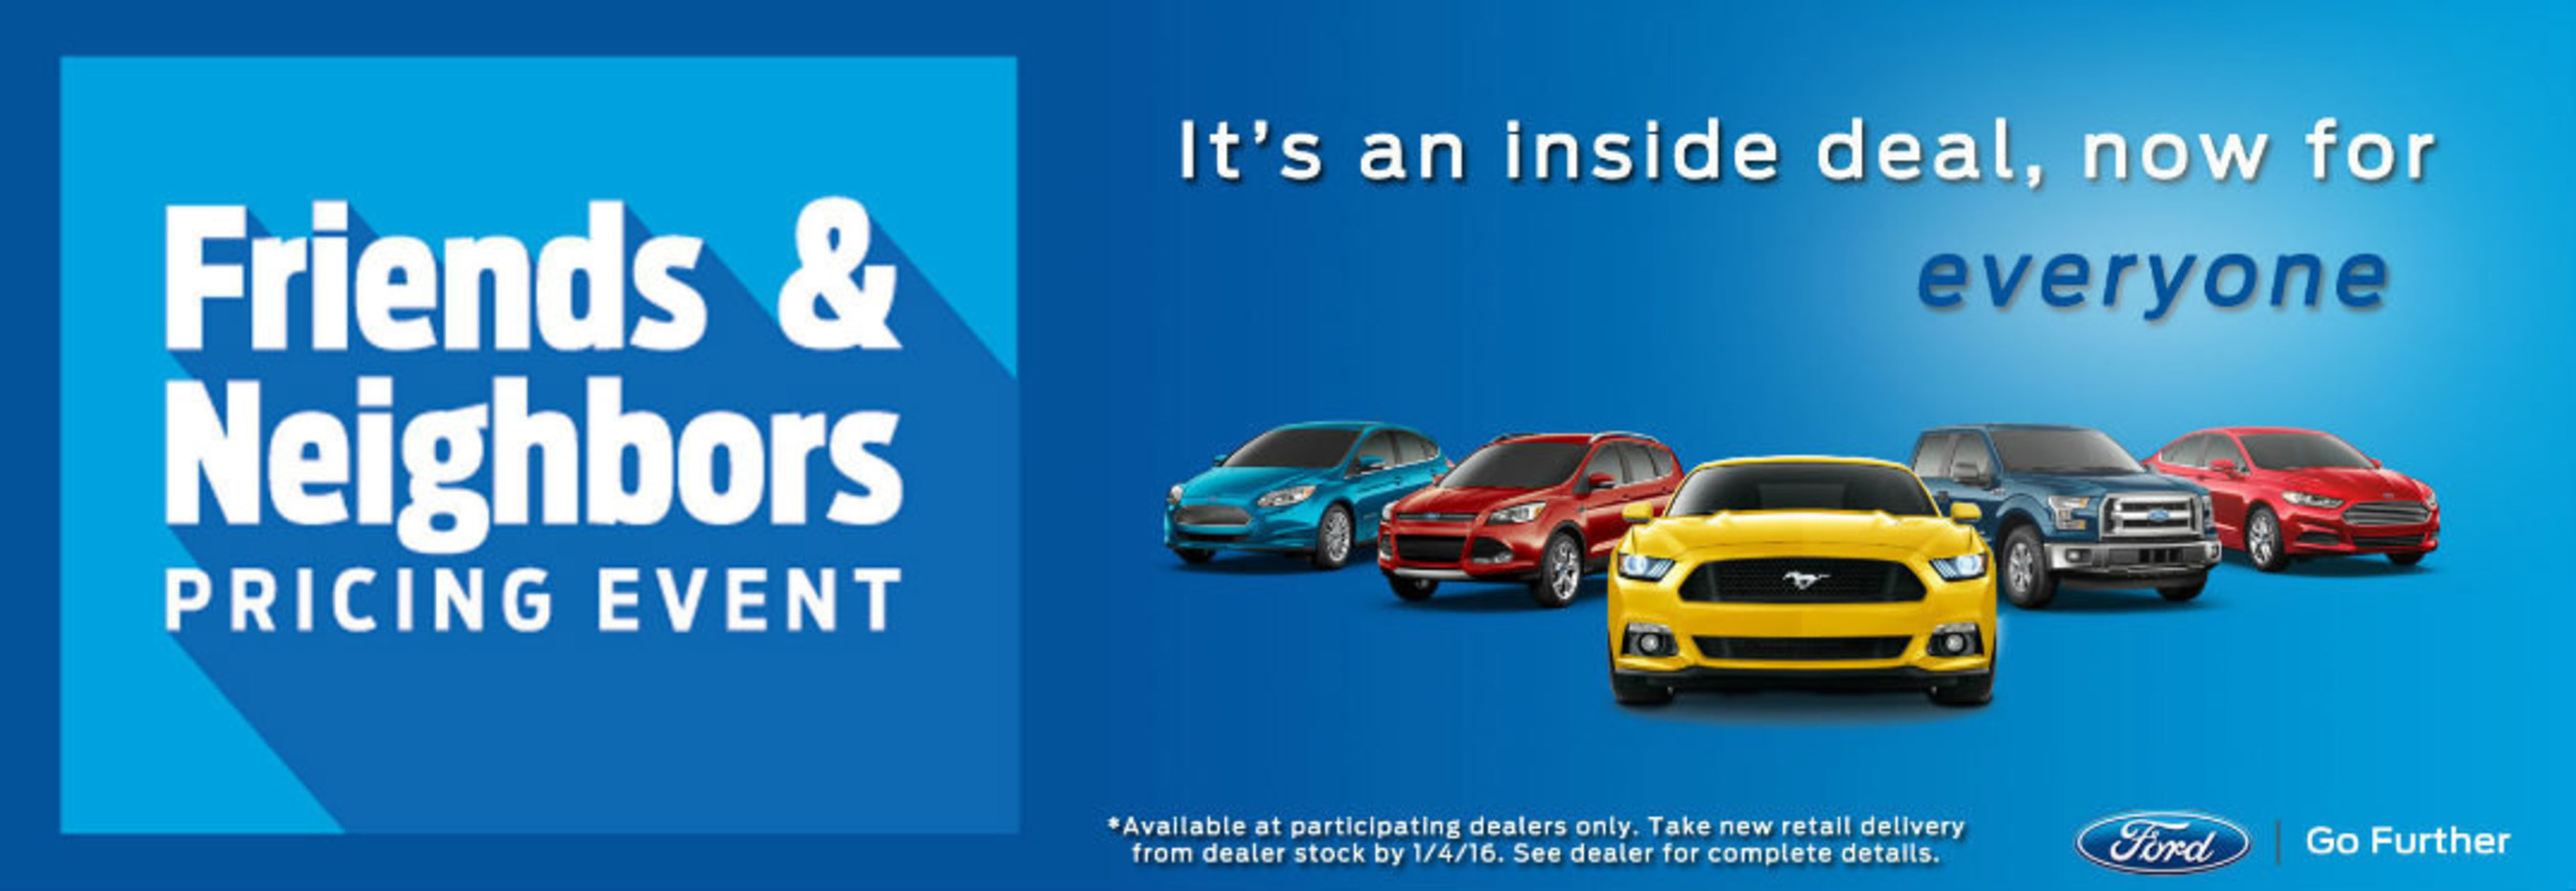 Dahl Ford informs drivers on latest Friends and Neighbors Pricing Event